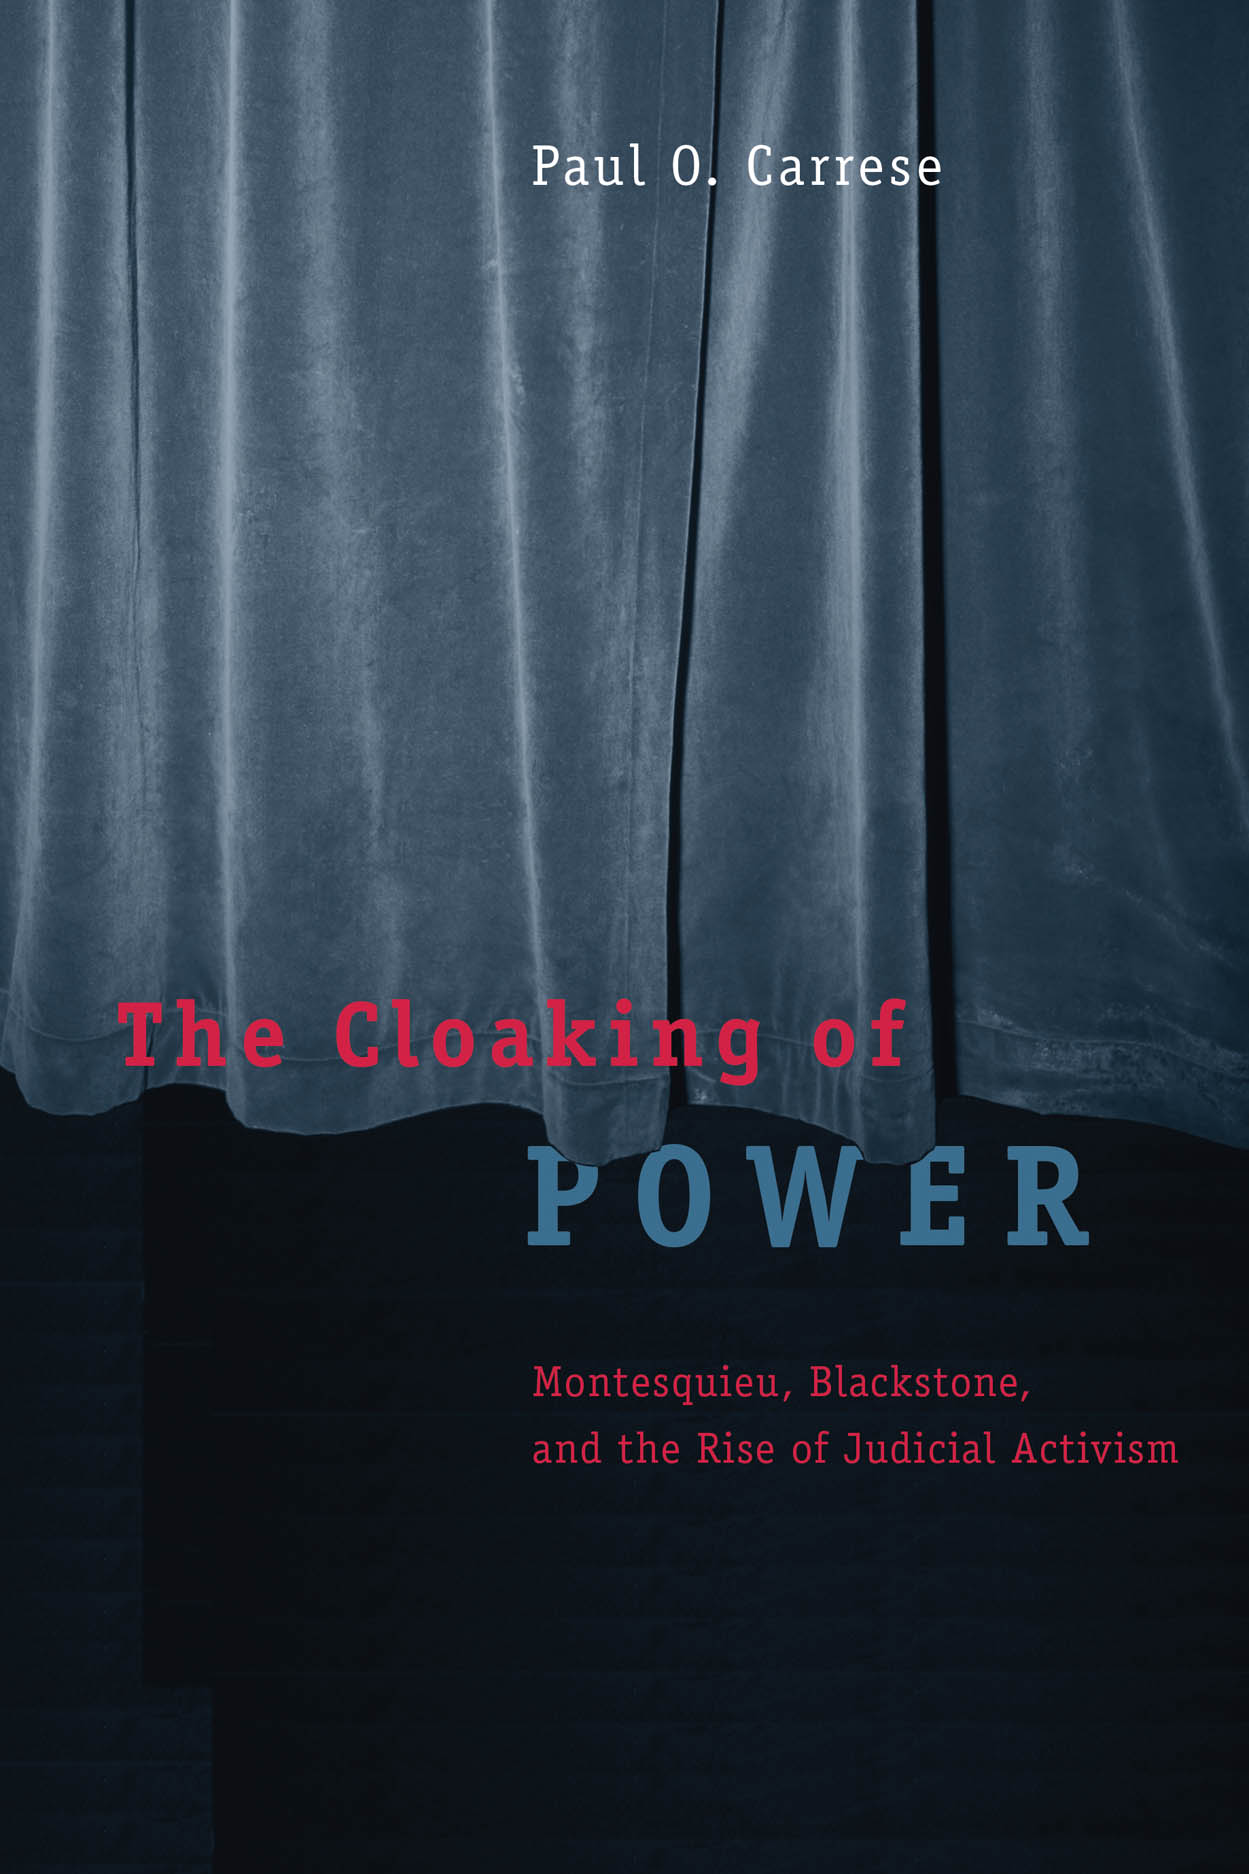 The Cloaking of Power